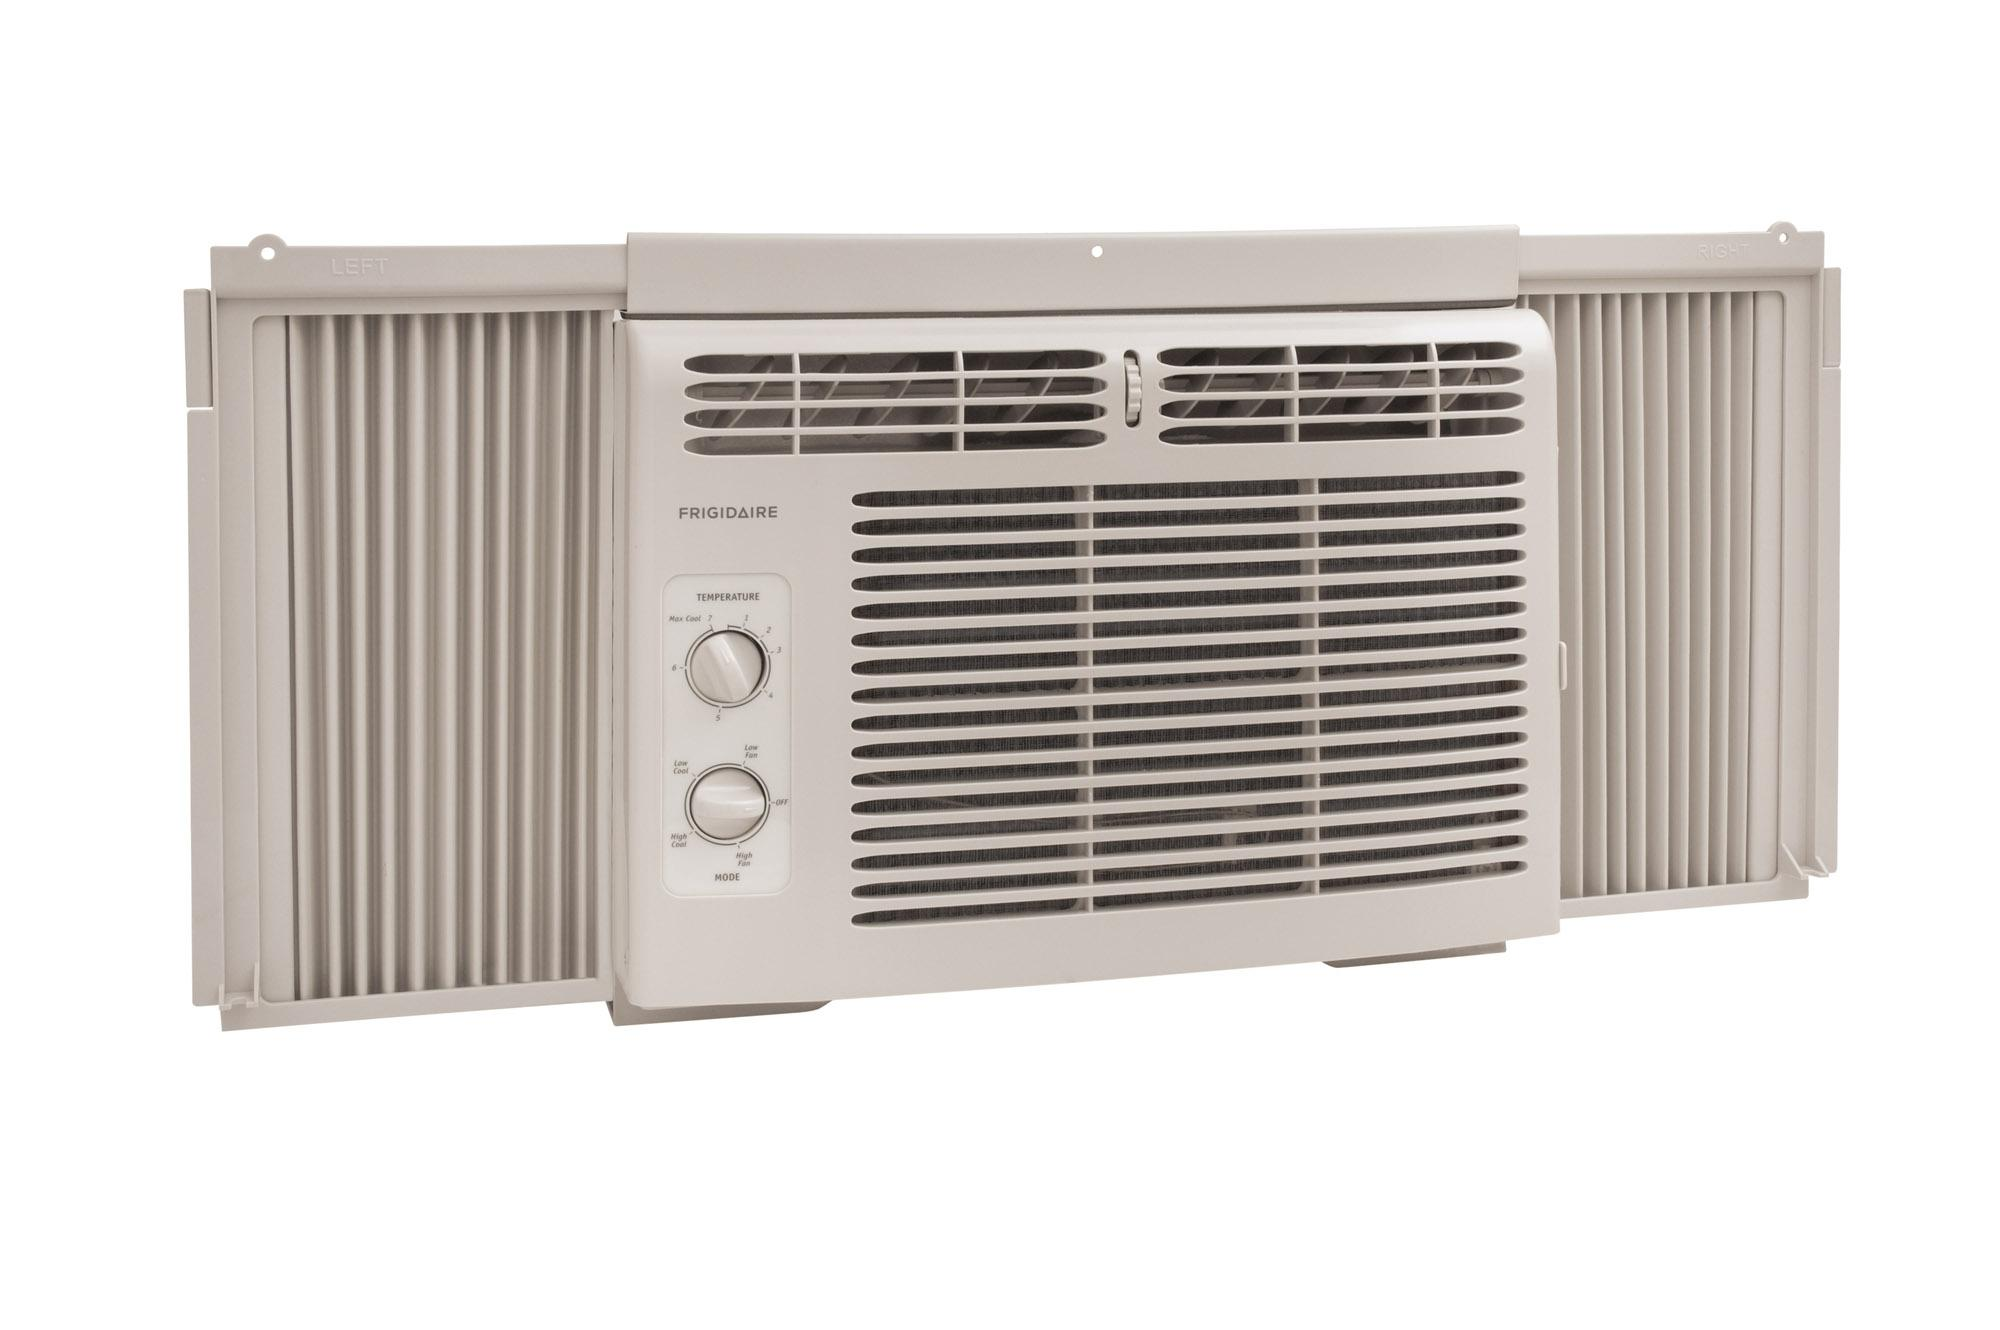 FRA122CV1 Frigidaire fra122cv1 Window/Wall Air Conditioners #746357